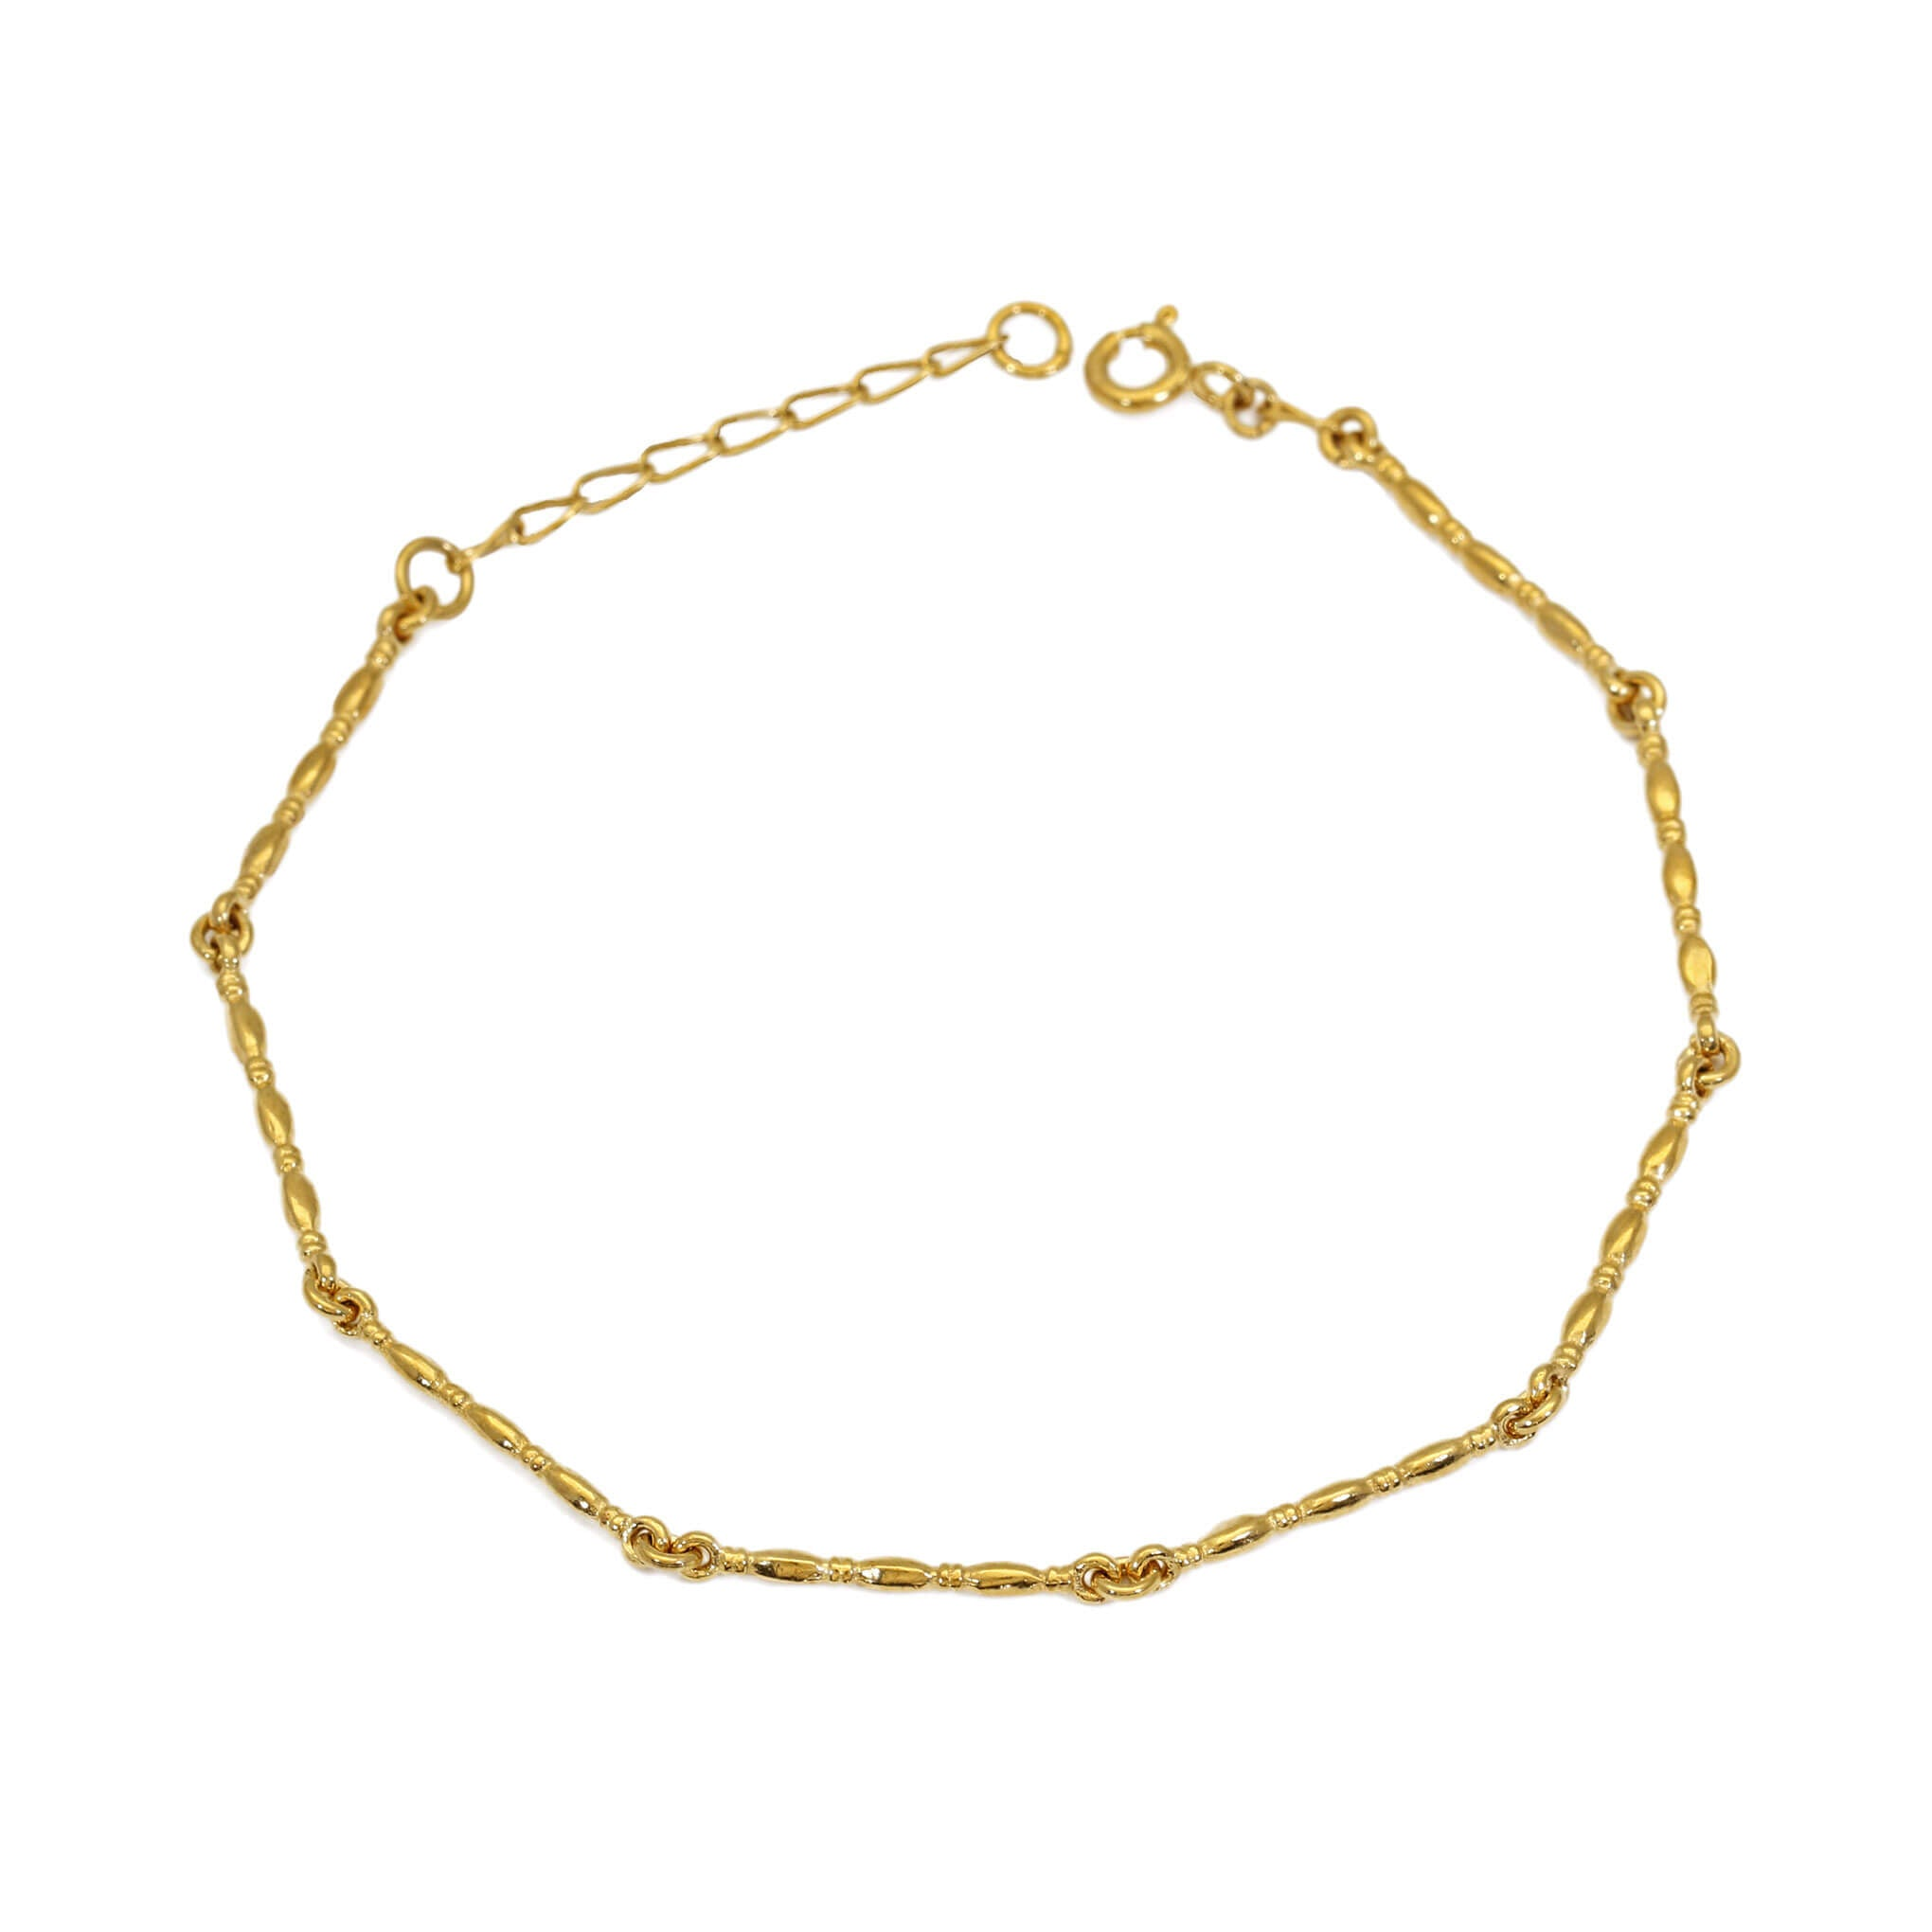 Gammarus Yellow Gold Bracelet on white background